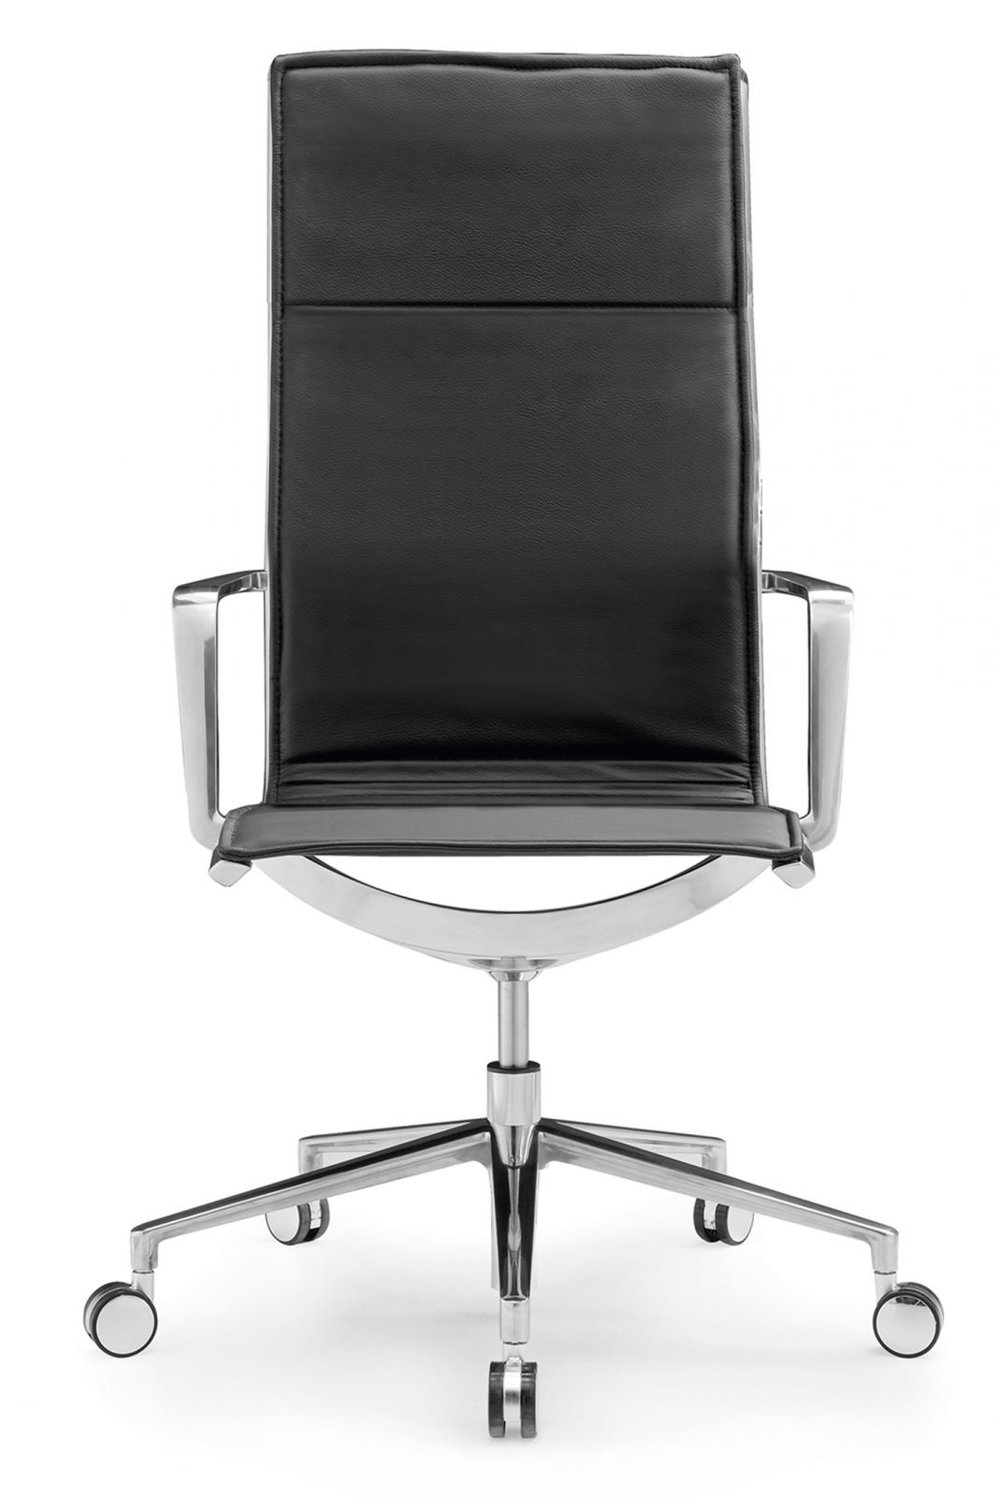 modern-office-armchairs-Italian-furniture-designer-armchairs (74).jpg